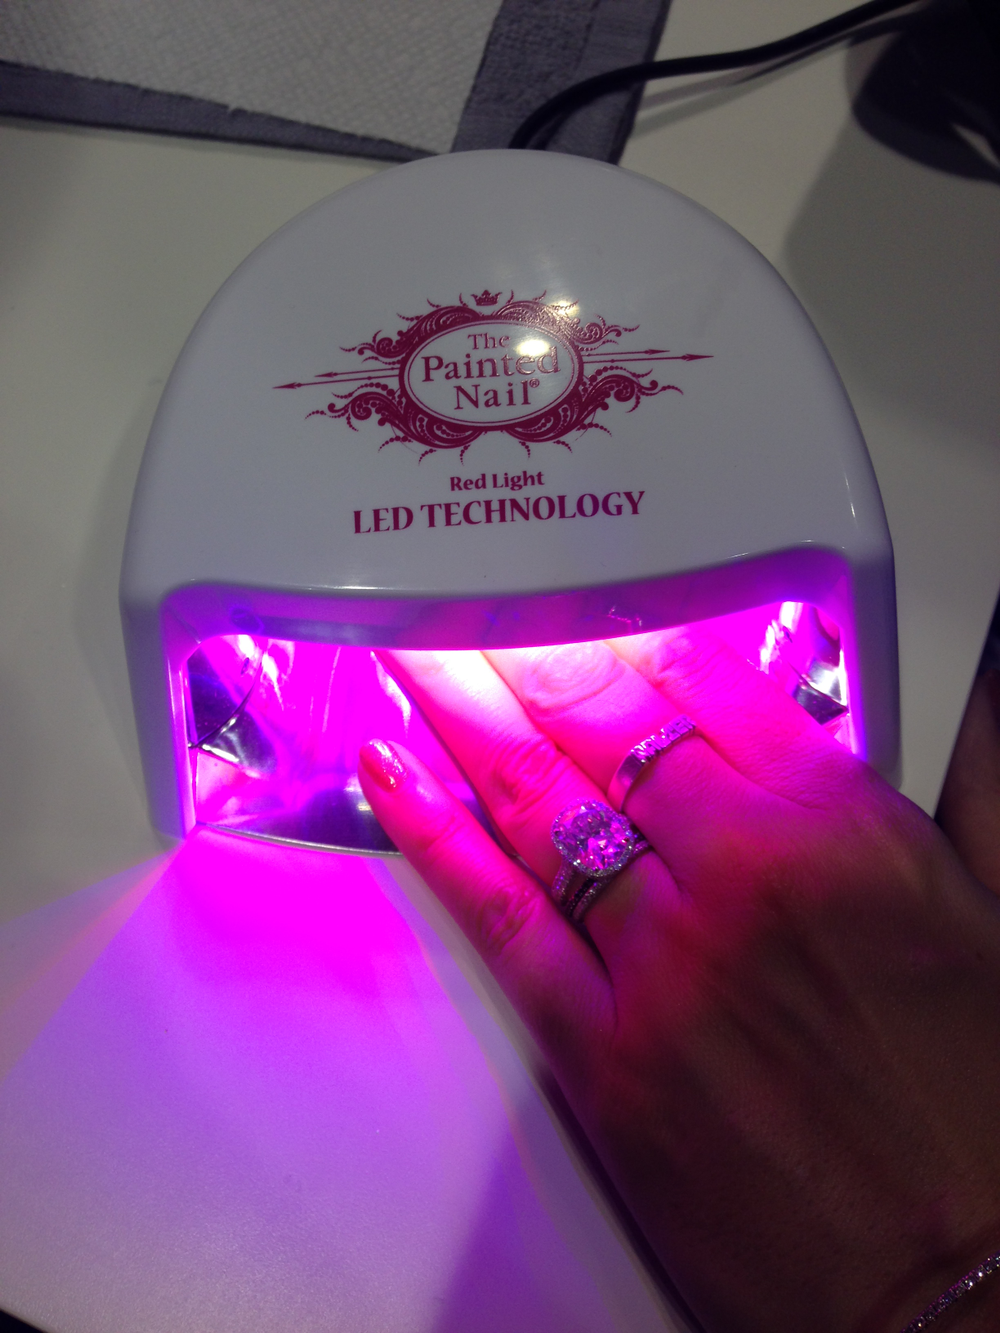 <p>The Painted Nail introduces right light technology for its new LED lamp.&nbsp;</p>